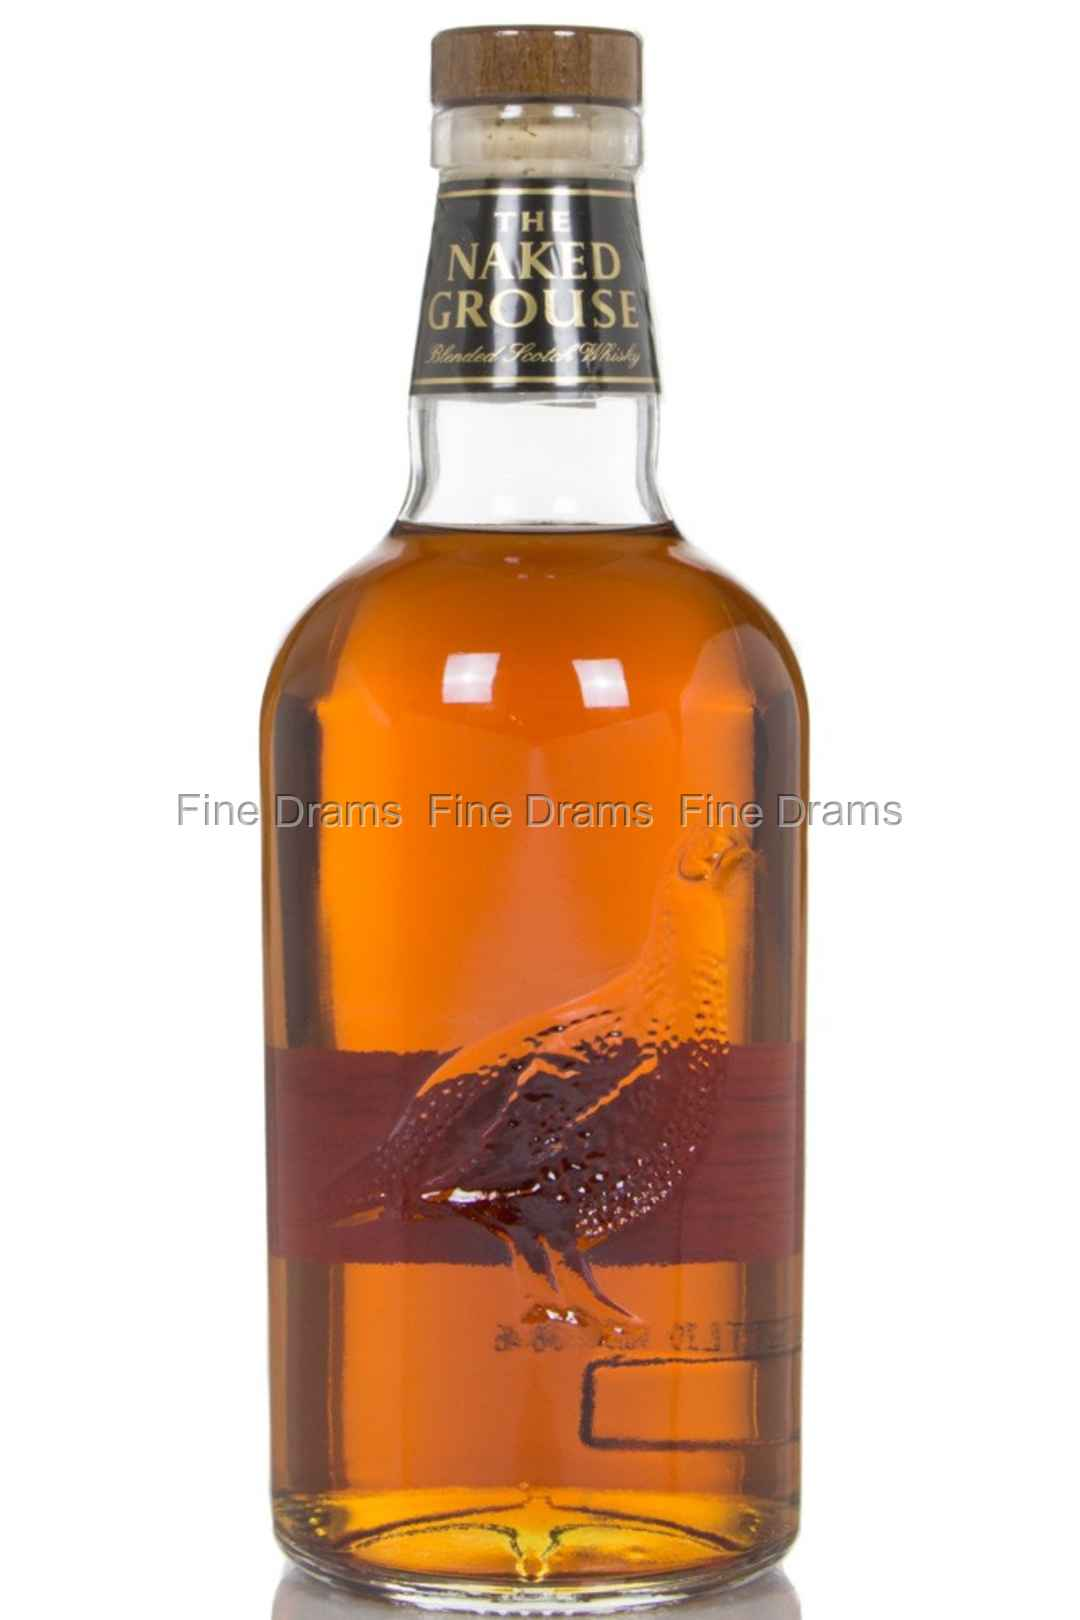 Famous Grouse Naked Grouse - Whisky.com